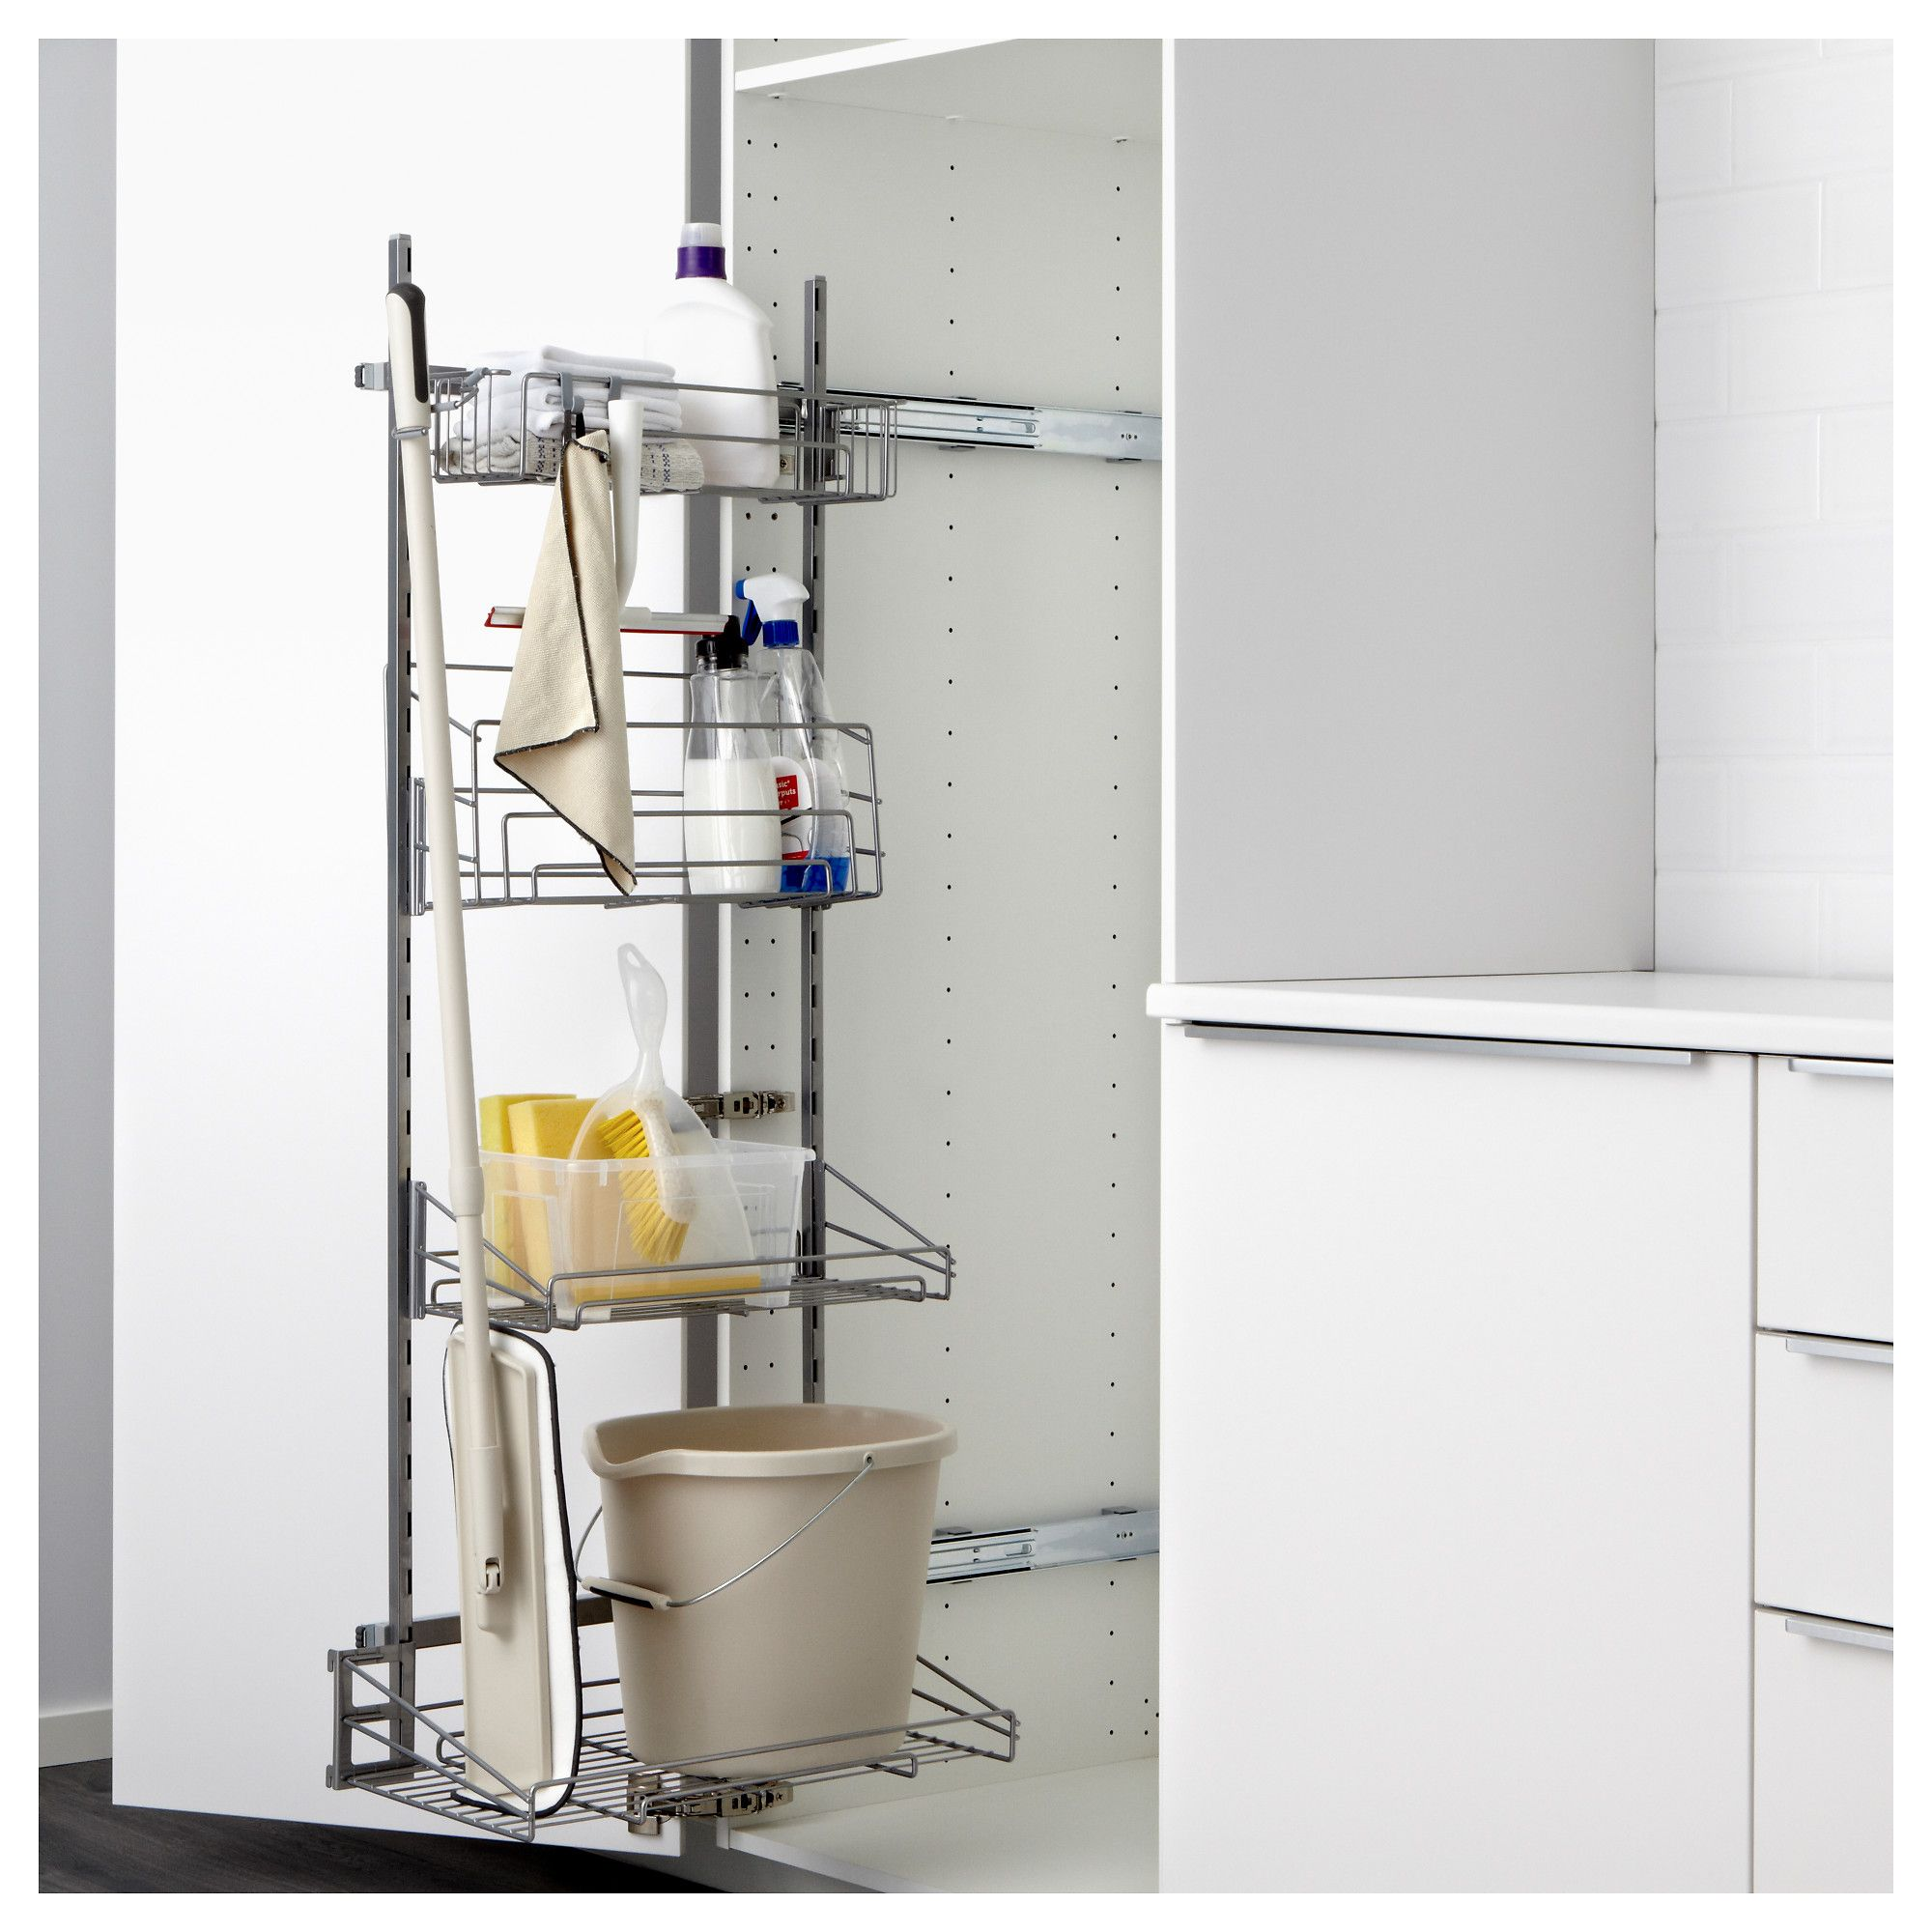 Kitchen Drawer Organizer Ikea Island With Shelves Utrusta Pull Out Rack For Cleaning Supplies Products